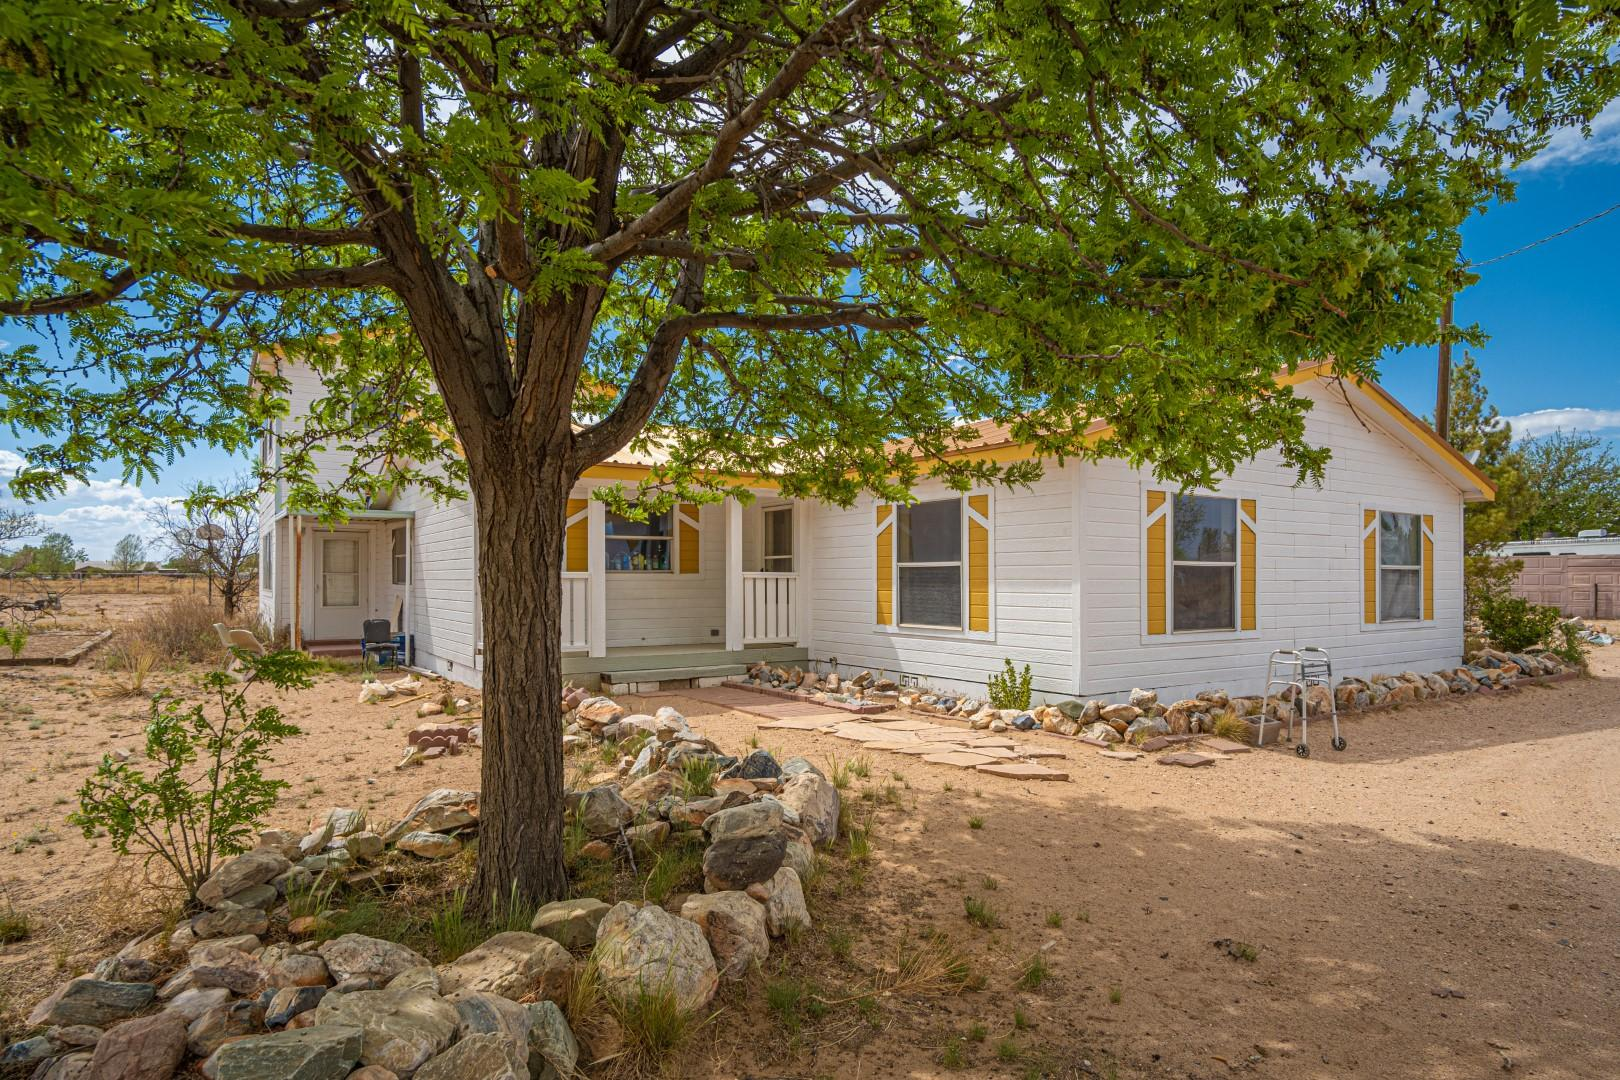 38 CAMPBELL Court Property Photo - Los Lunas, NM real estate listing